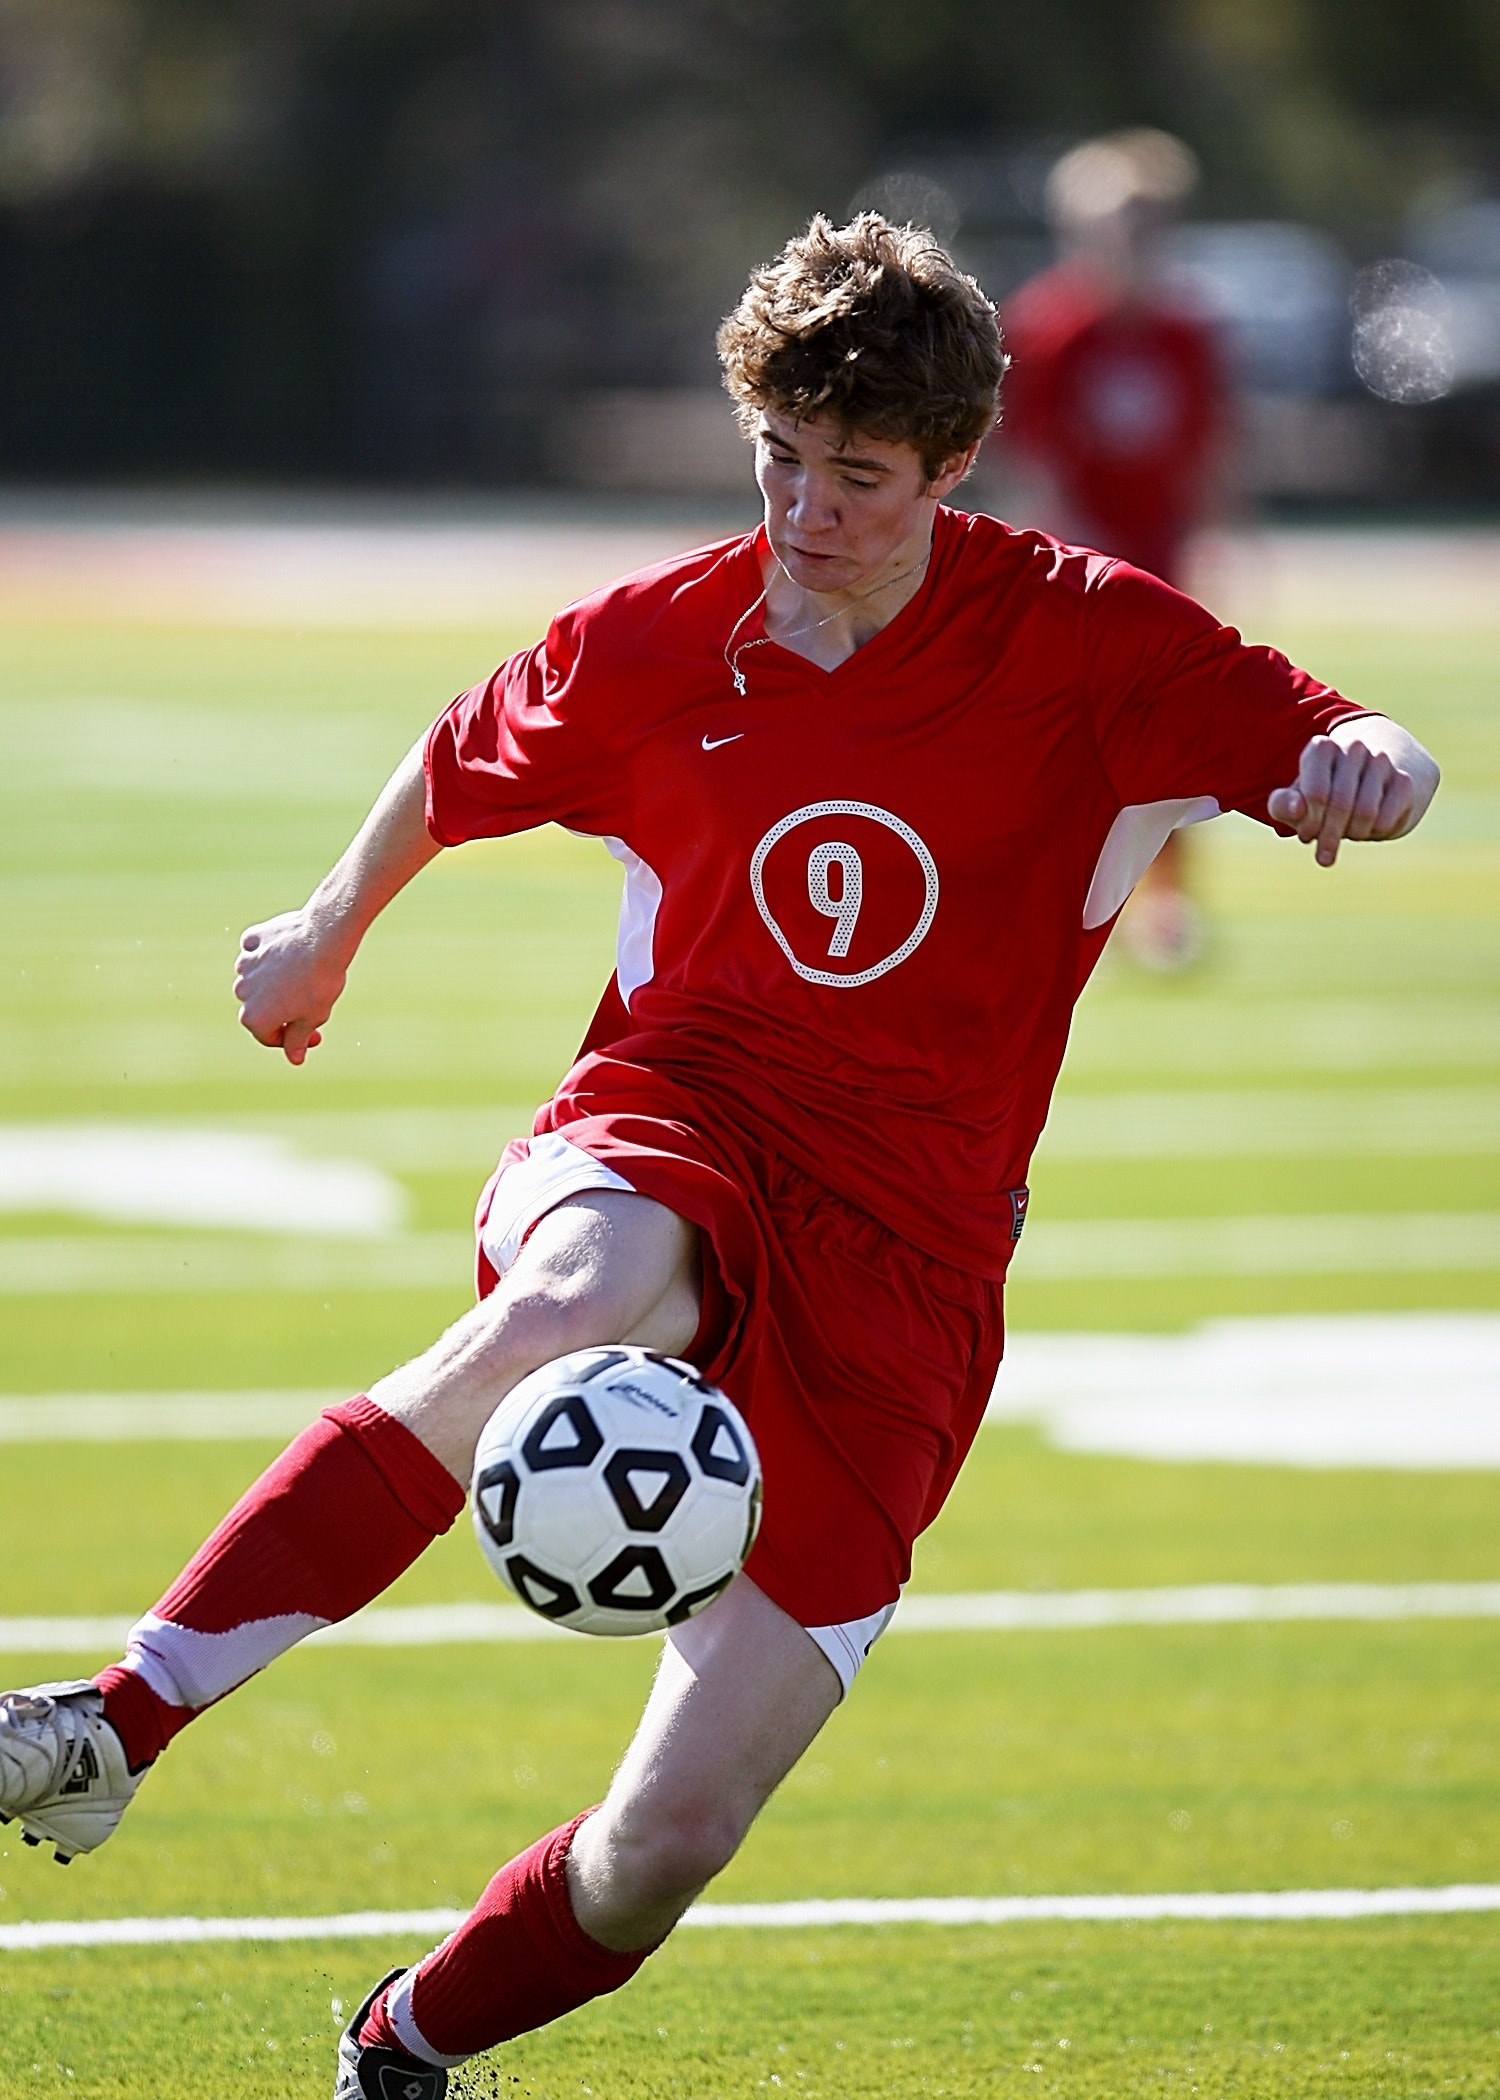 Person Playing Soccer, Athlete, Ball, Field, Game, HQ Photo